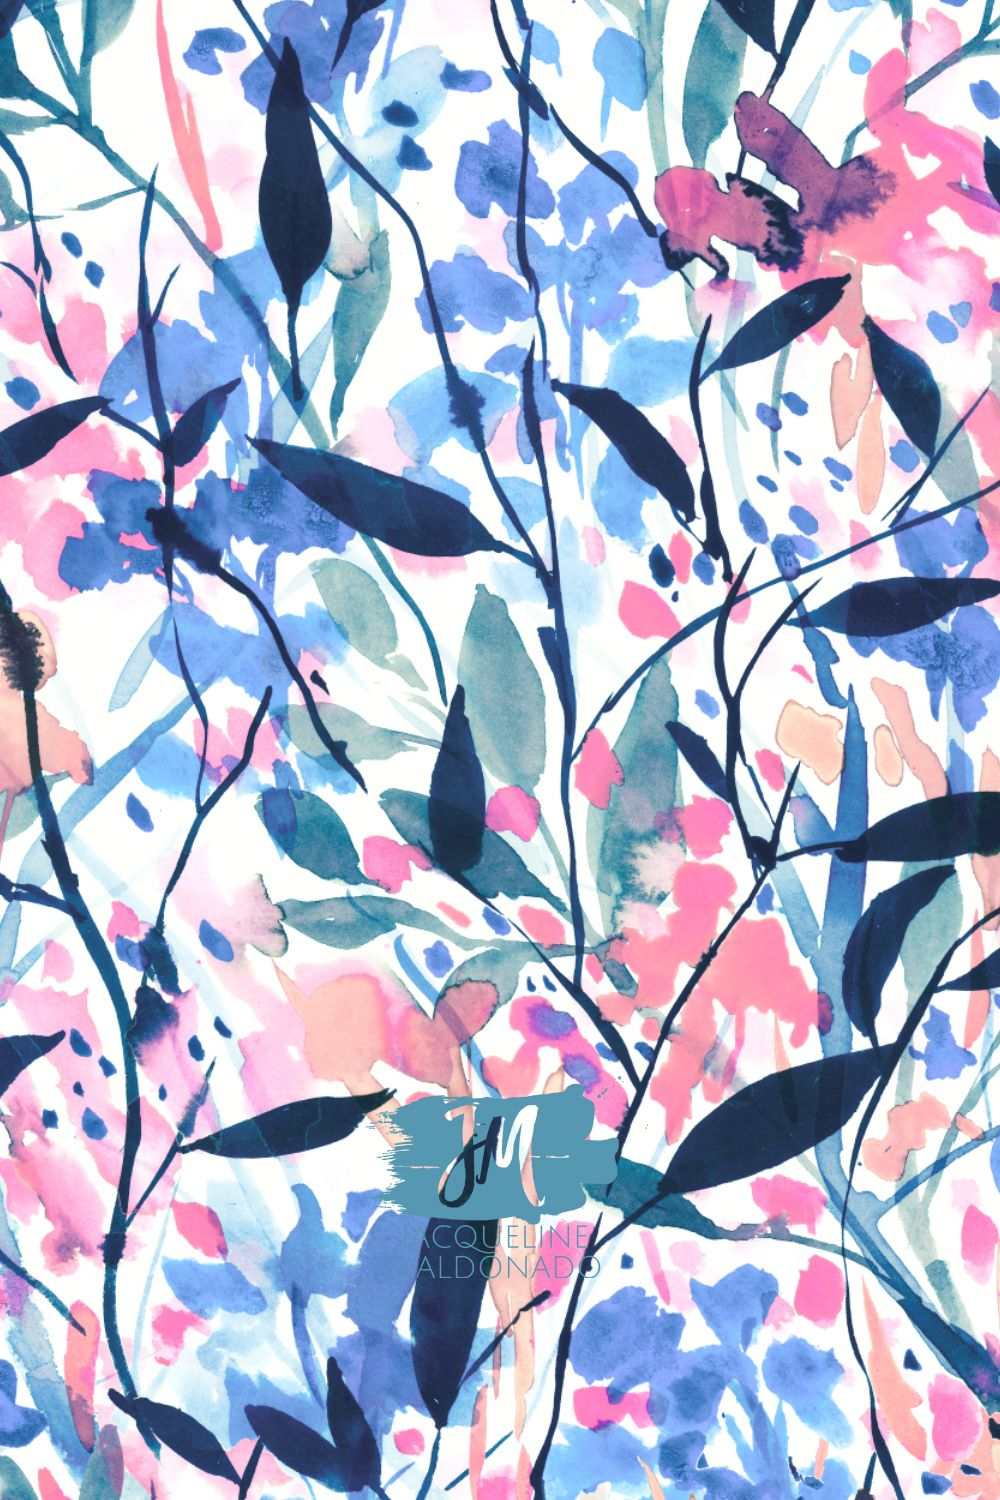 Watercolor floral art print by surface designer Jacqueline Maldonado. Color trends and print and pattern art licensing. #surfacedesign